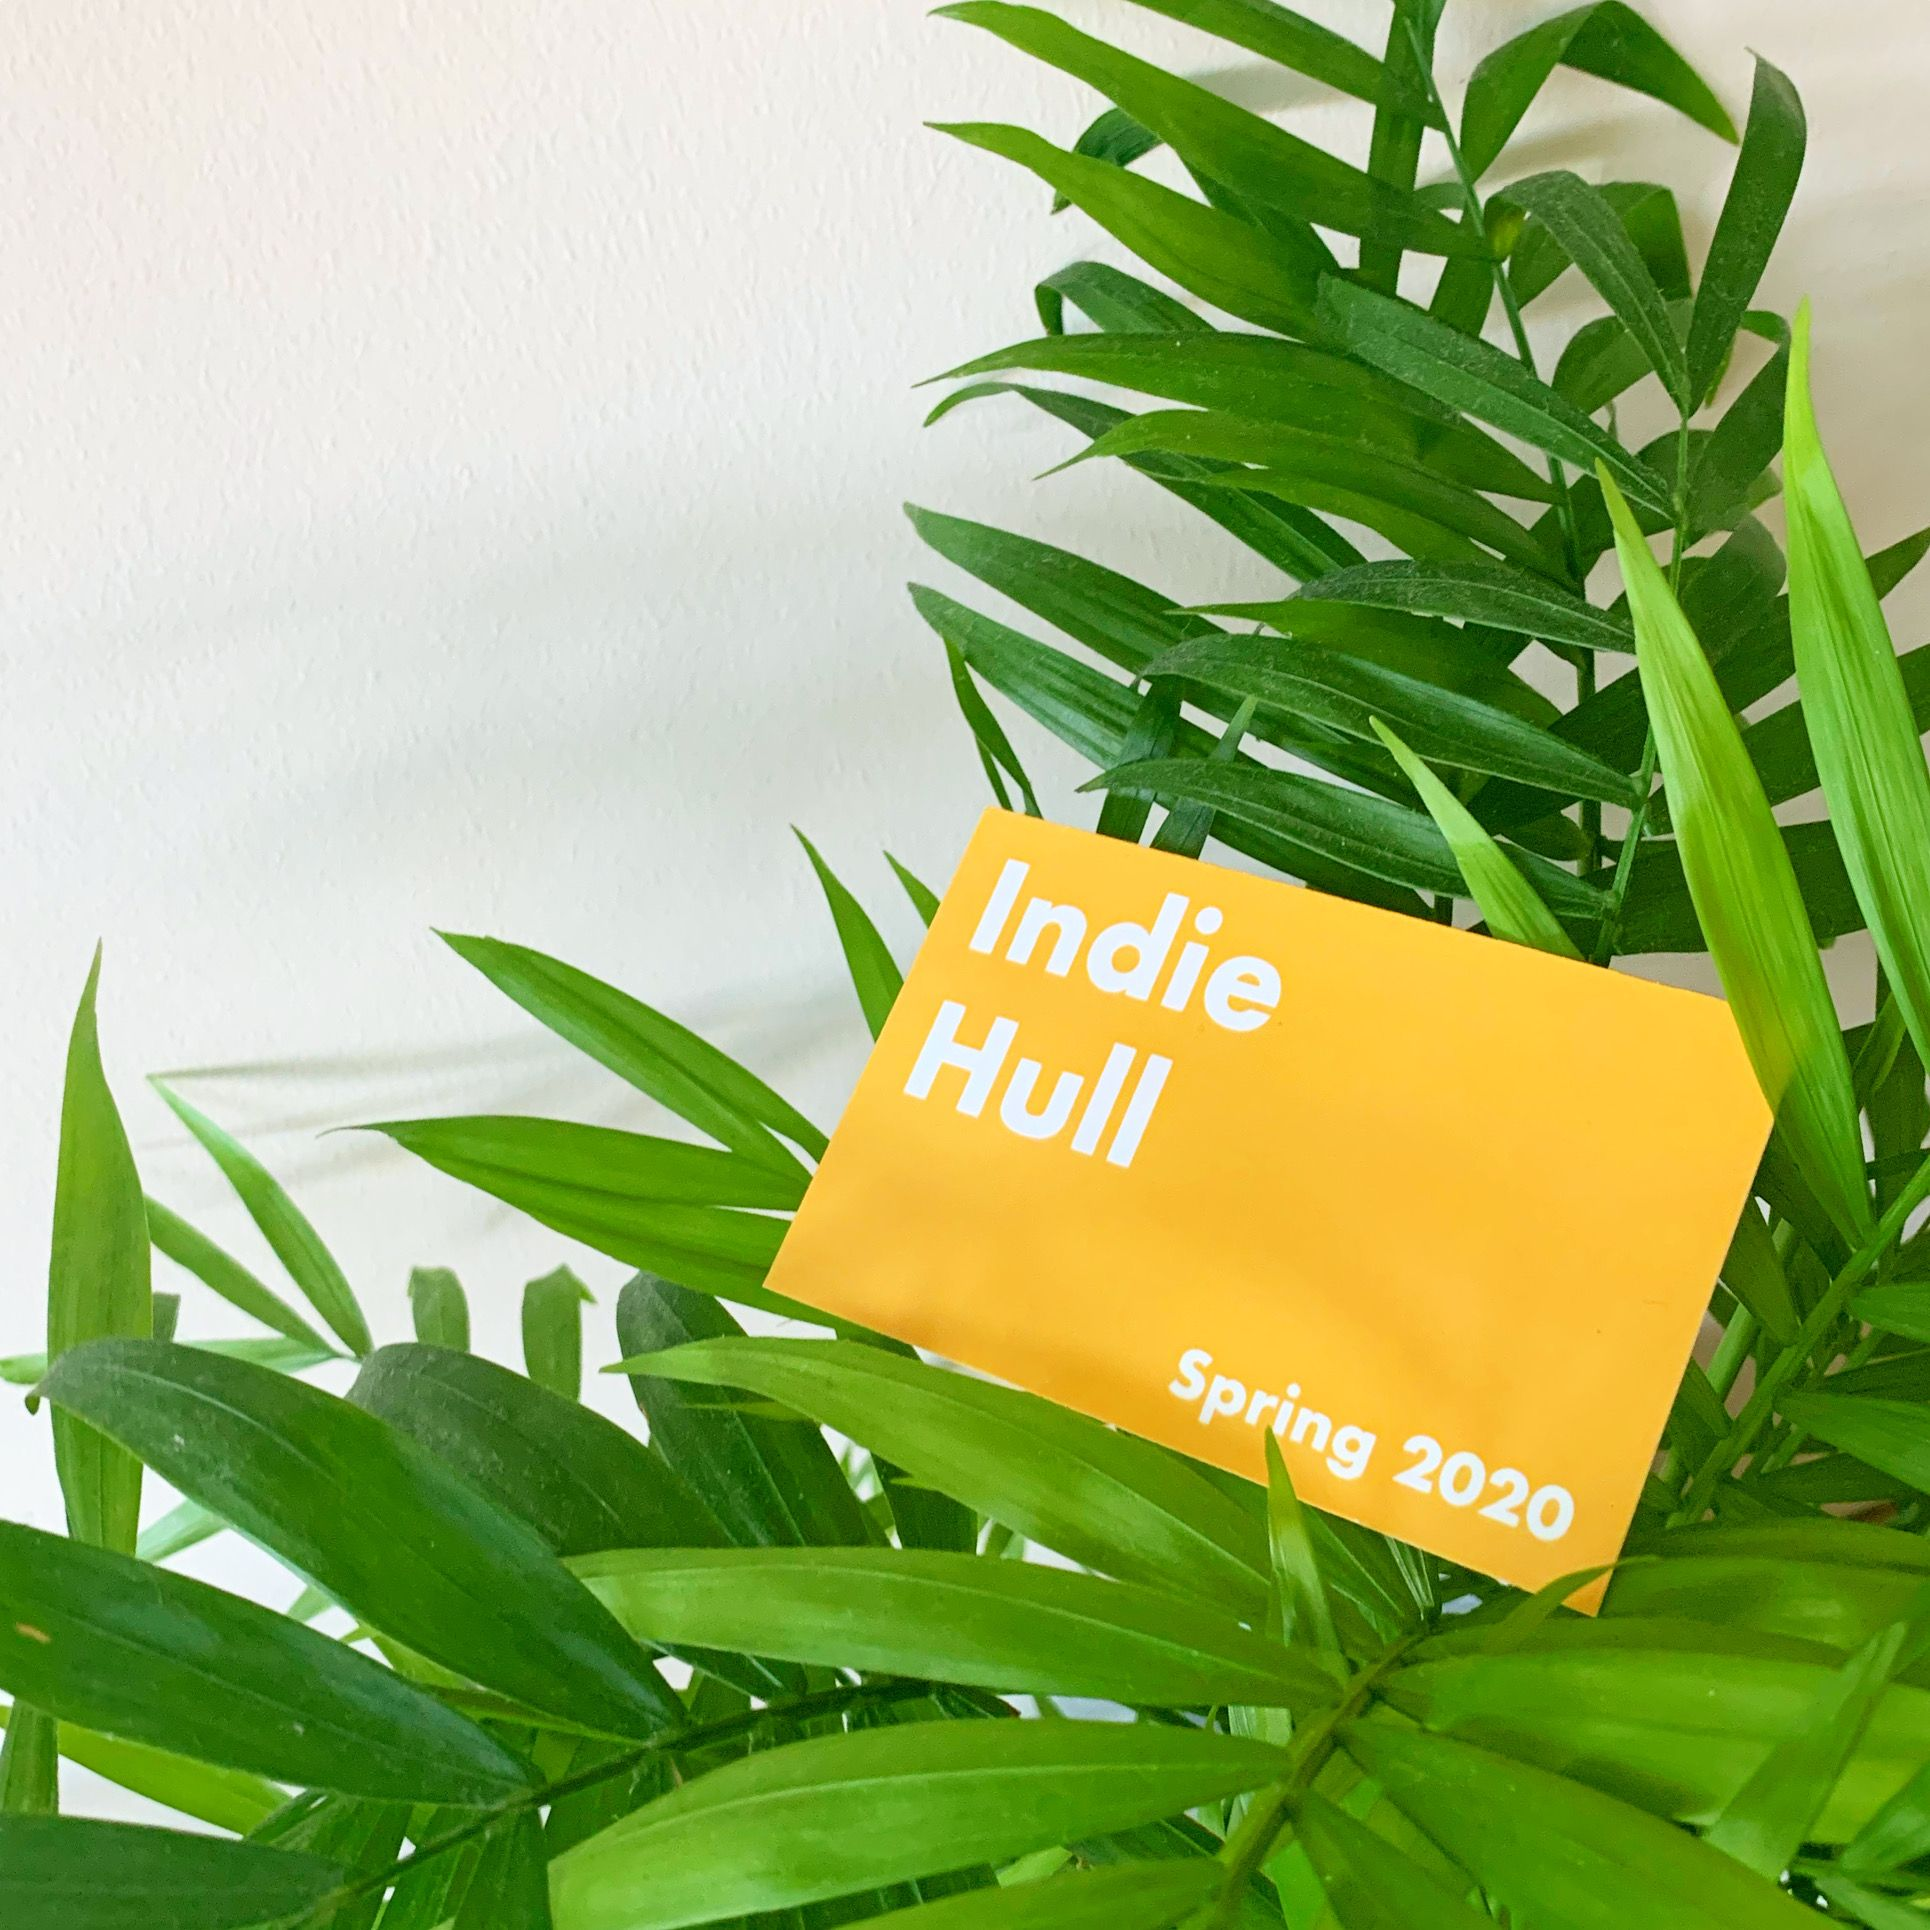 Indie Hull business card